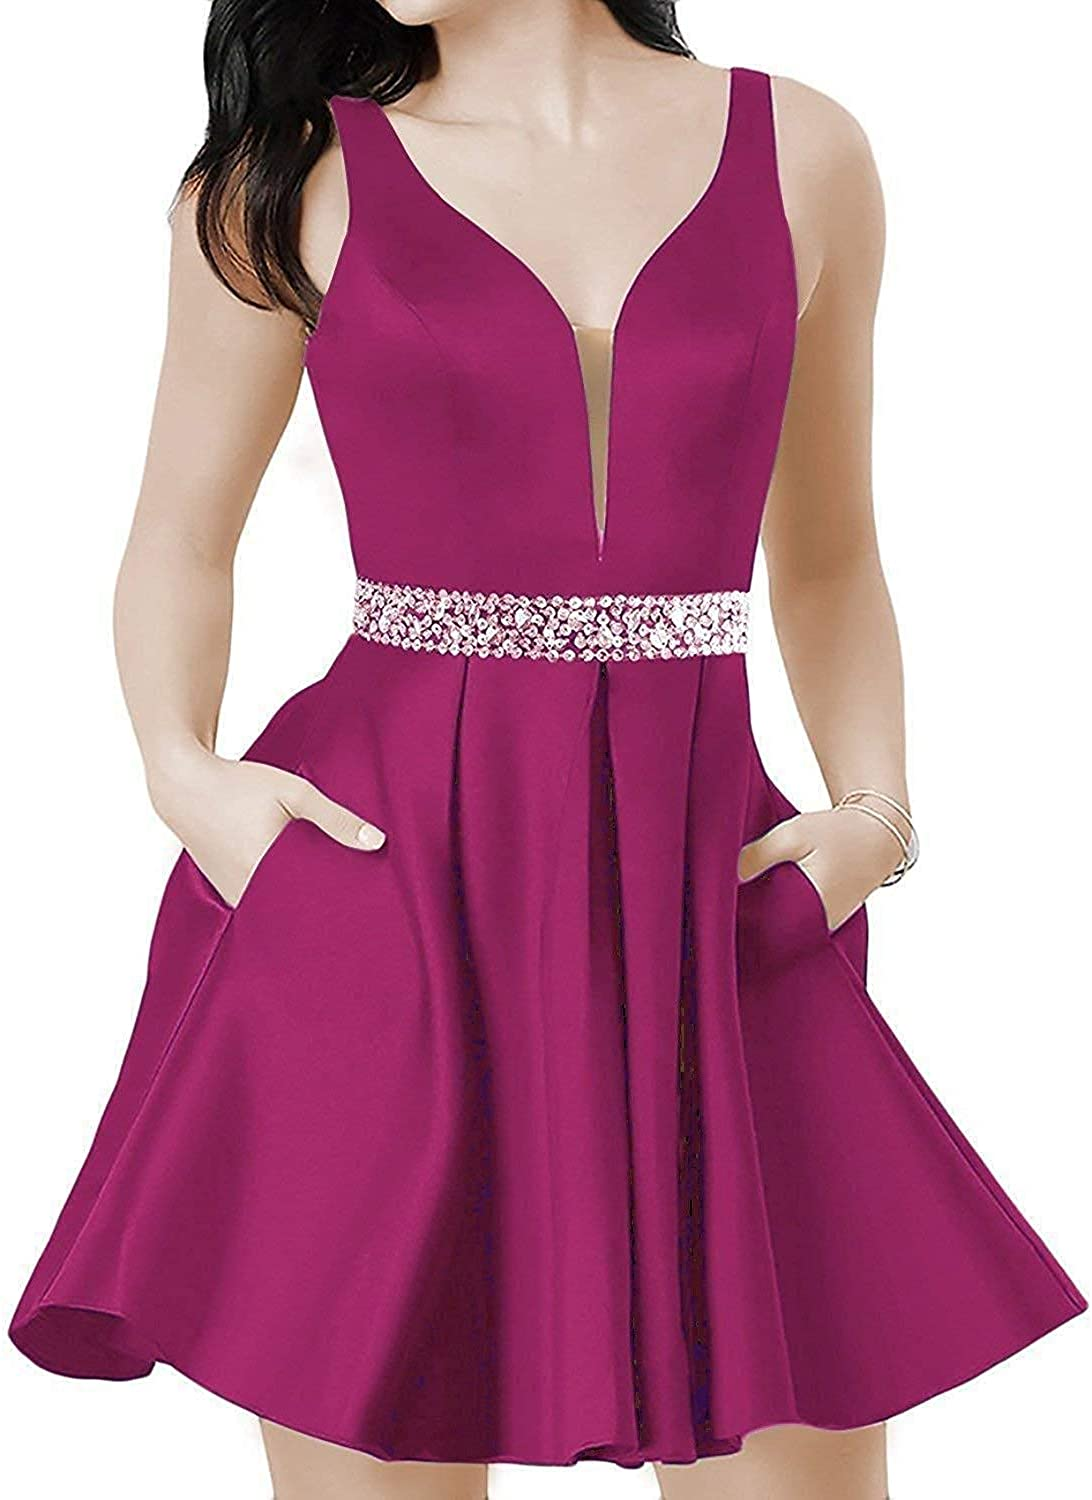 Macria Women's ALine Satin Homecoming Dresses with Beaded Short V Neck Prom Party Gowns